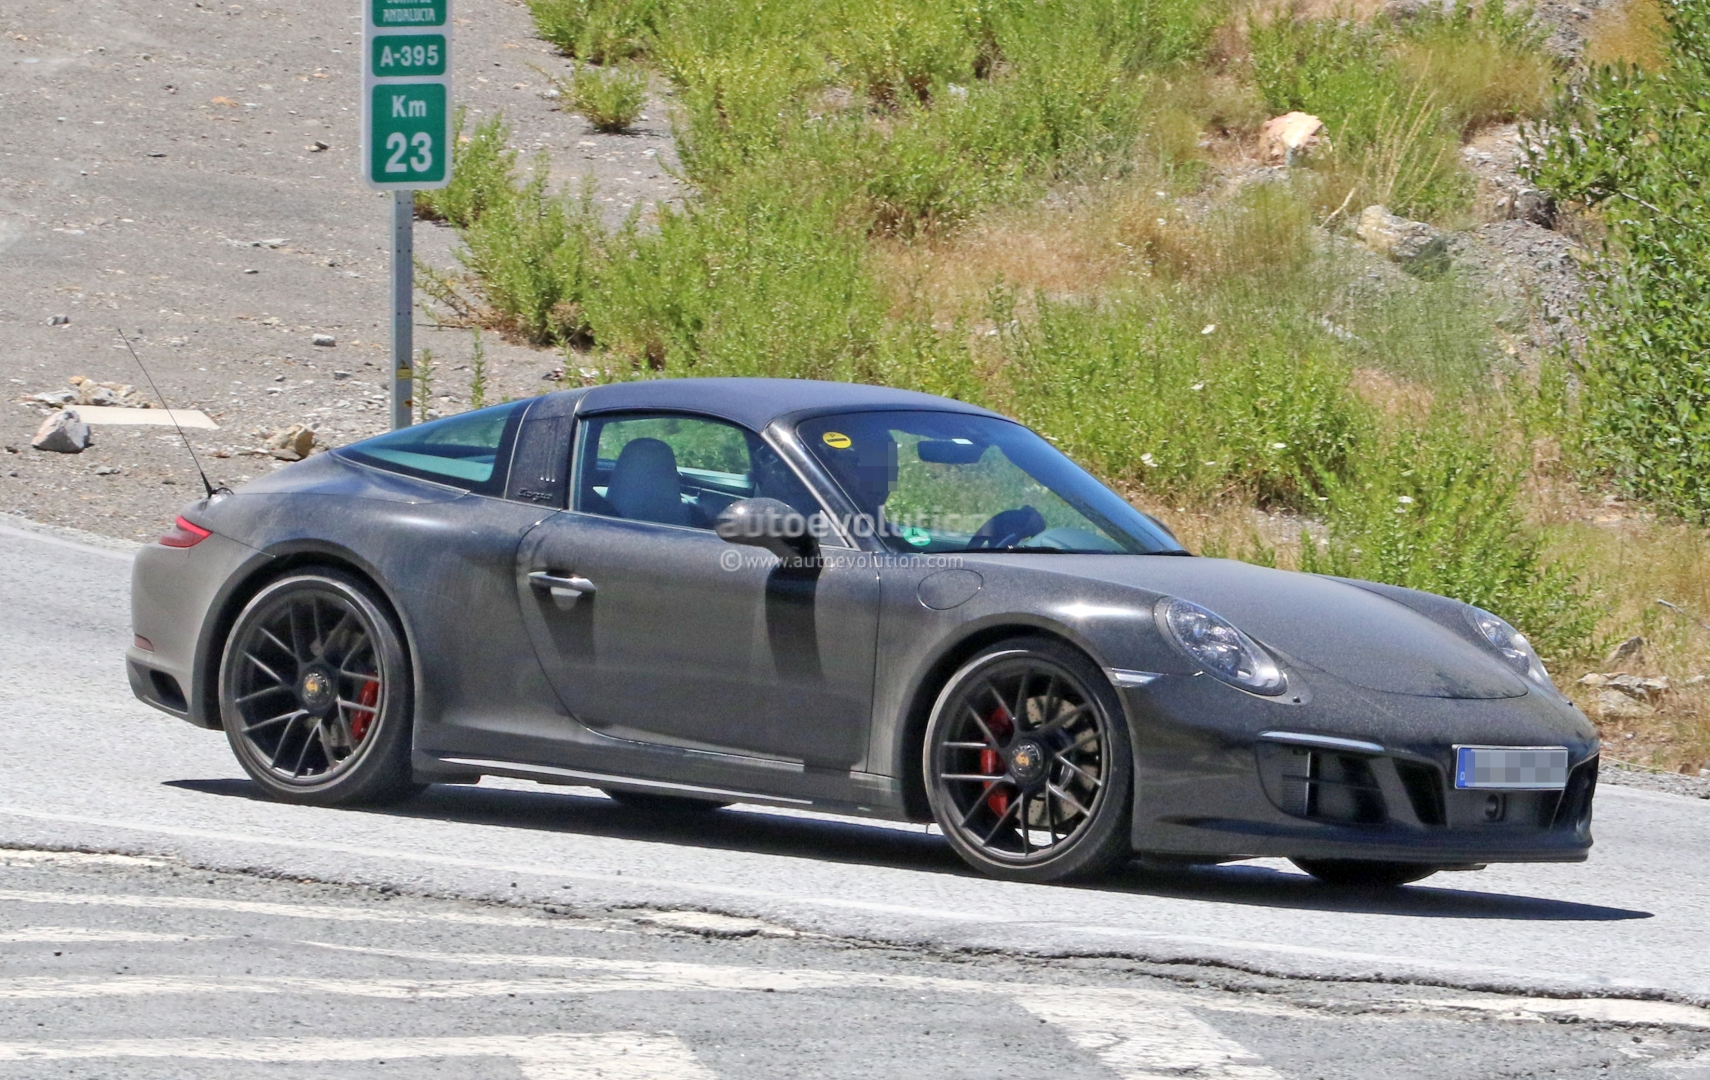 2017 porsche 911 targa gts revealed in spyshots with black roof bar paris debut autoevolution. Black Bedroom Furniture Sets. Home Design Ideas